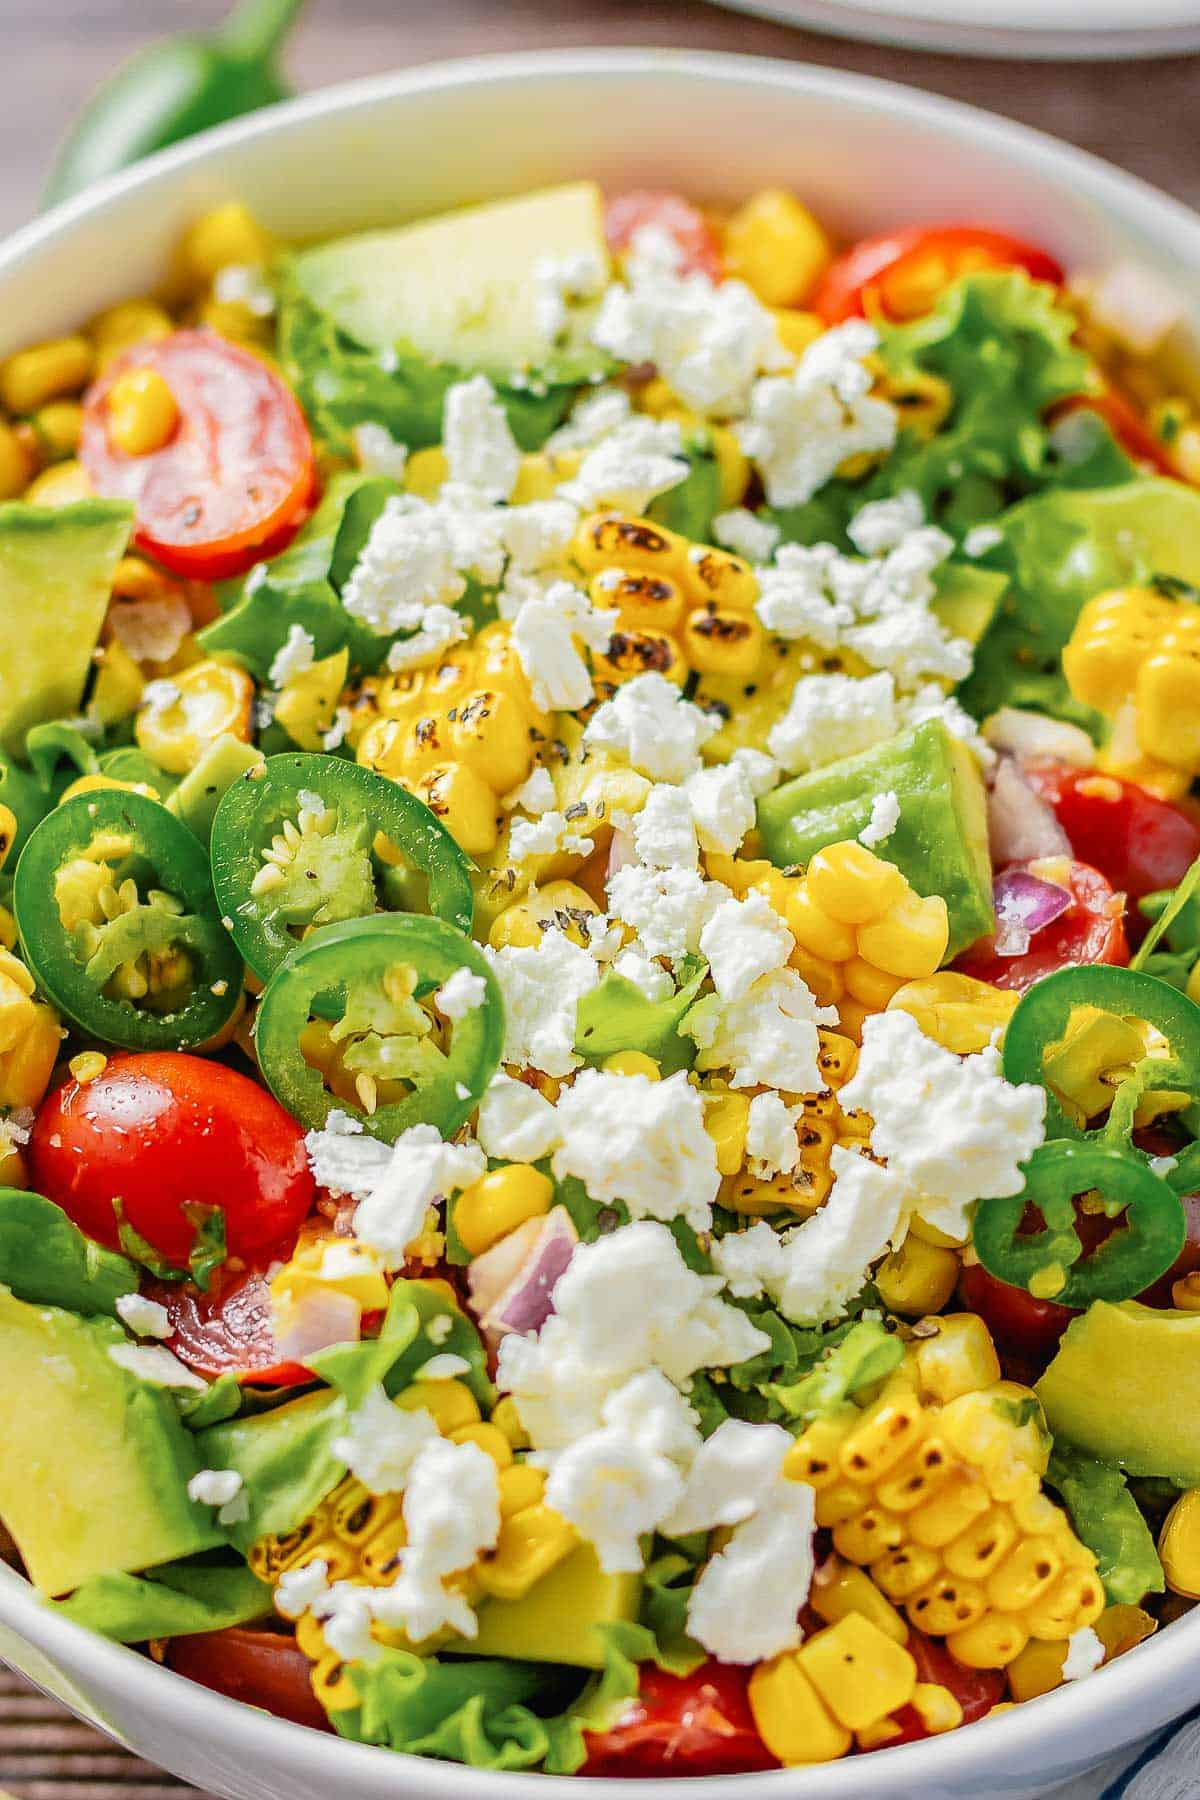 close up shot of a grilled corn salad with lettuce, avocado, tomatoes, onion in a white bowl on a wooden table